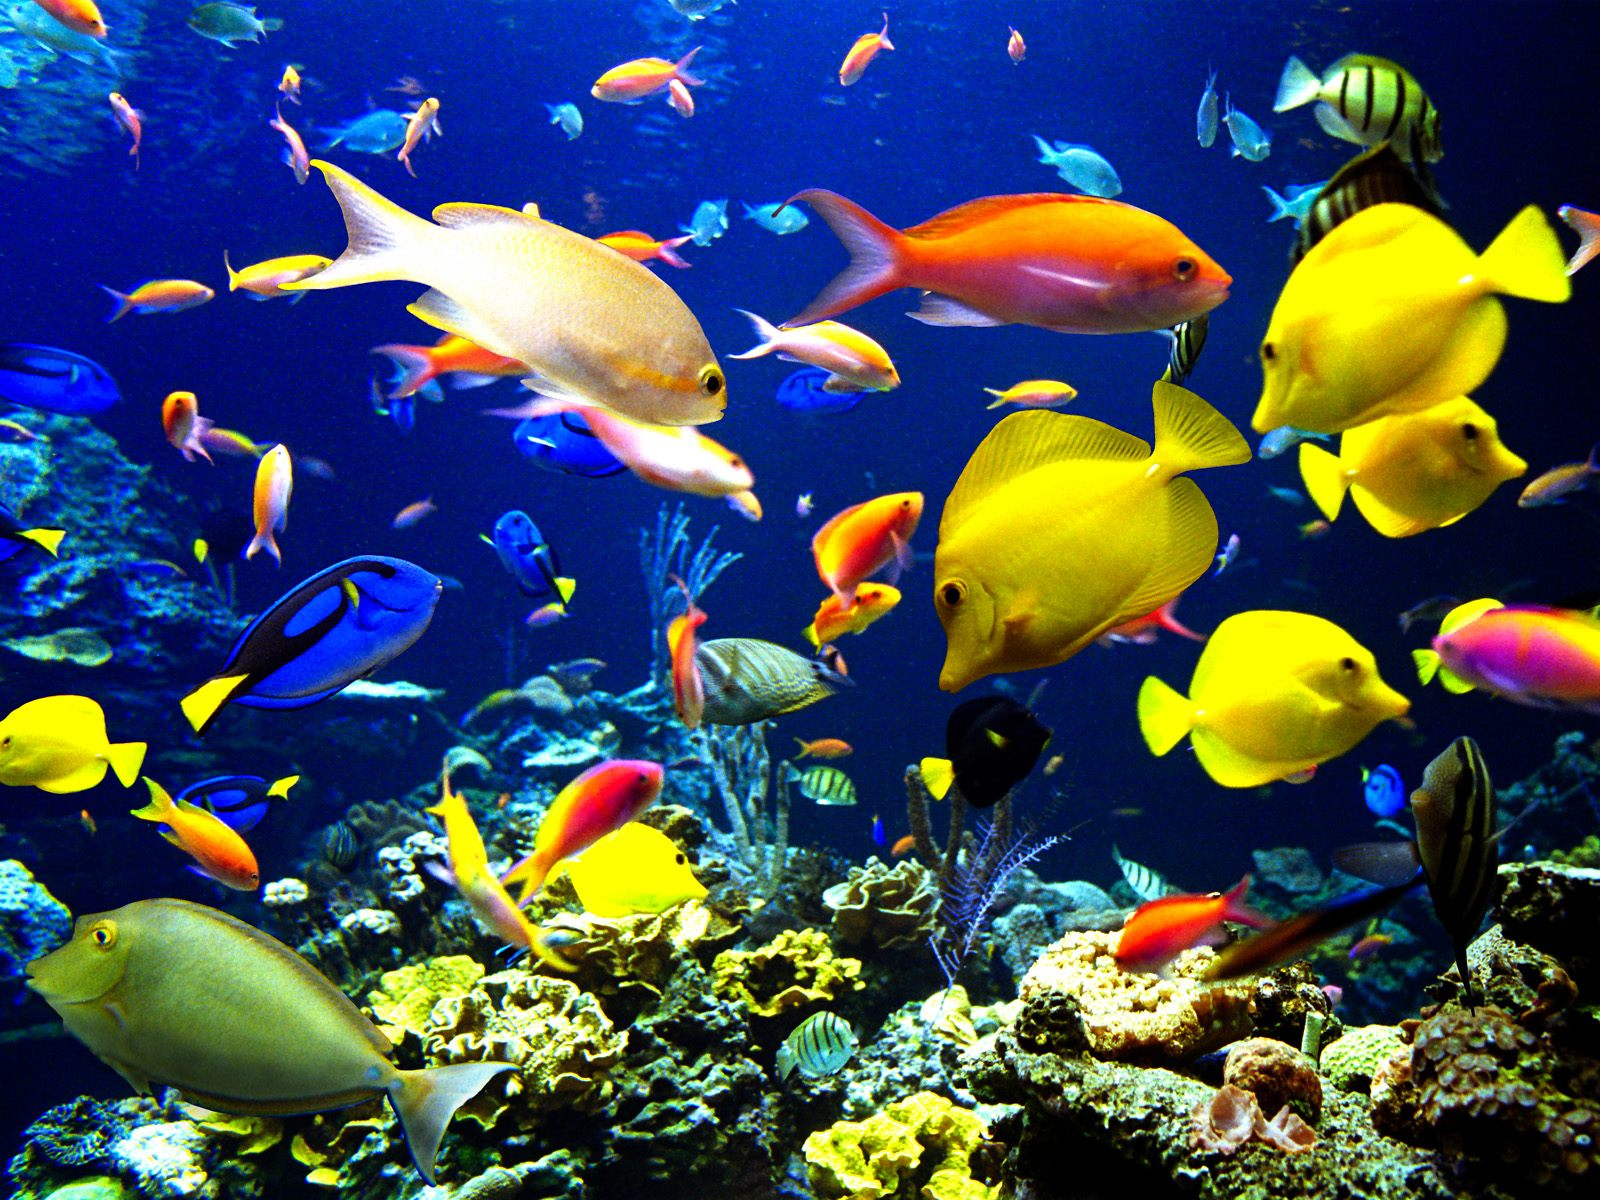 Fish Wallpapers 2 in addition William Cruz Bb155413 likewise Video Survey Assesses East Africas Coral Reef Fish together with What A Night also 7508480. on oscar flores flooring